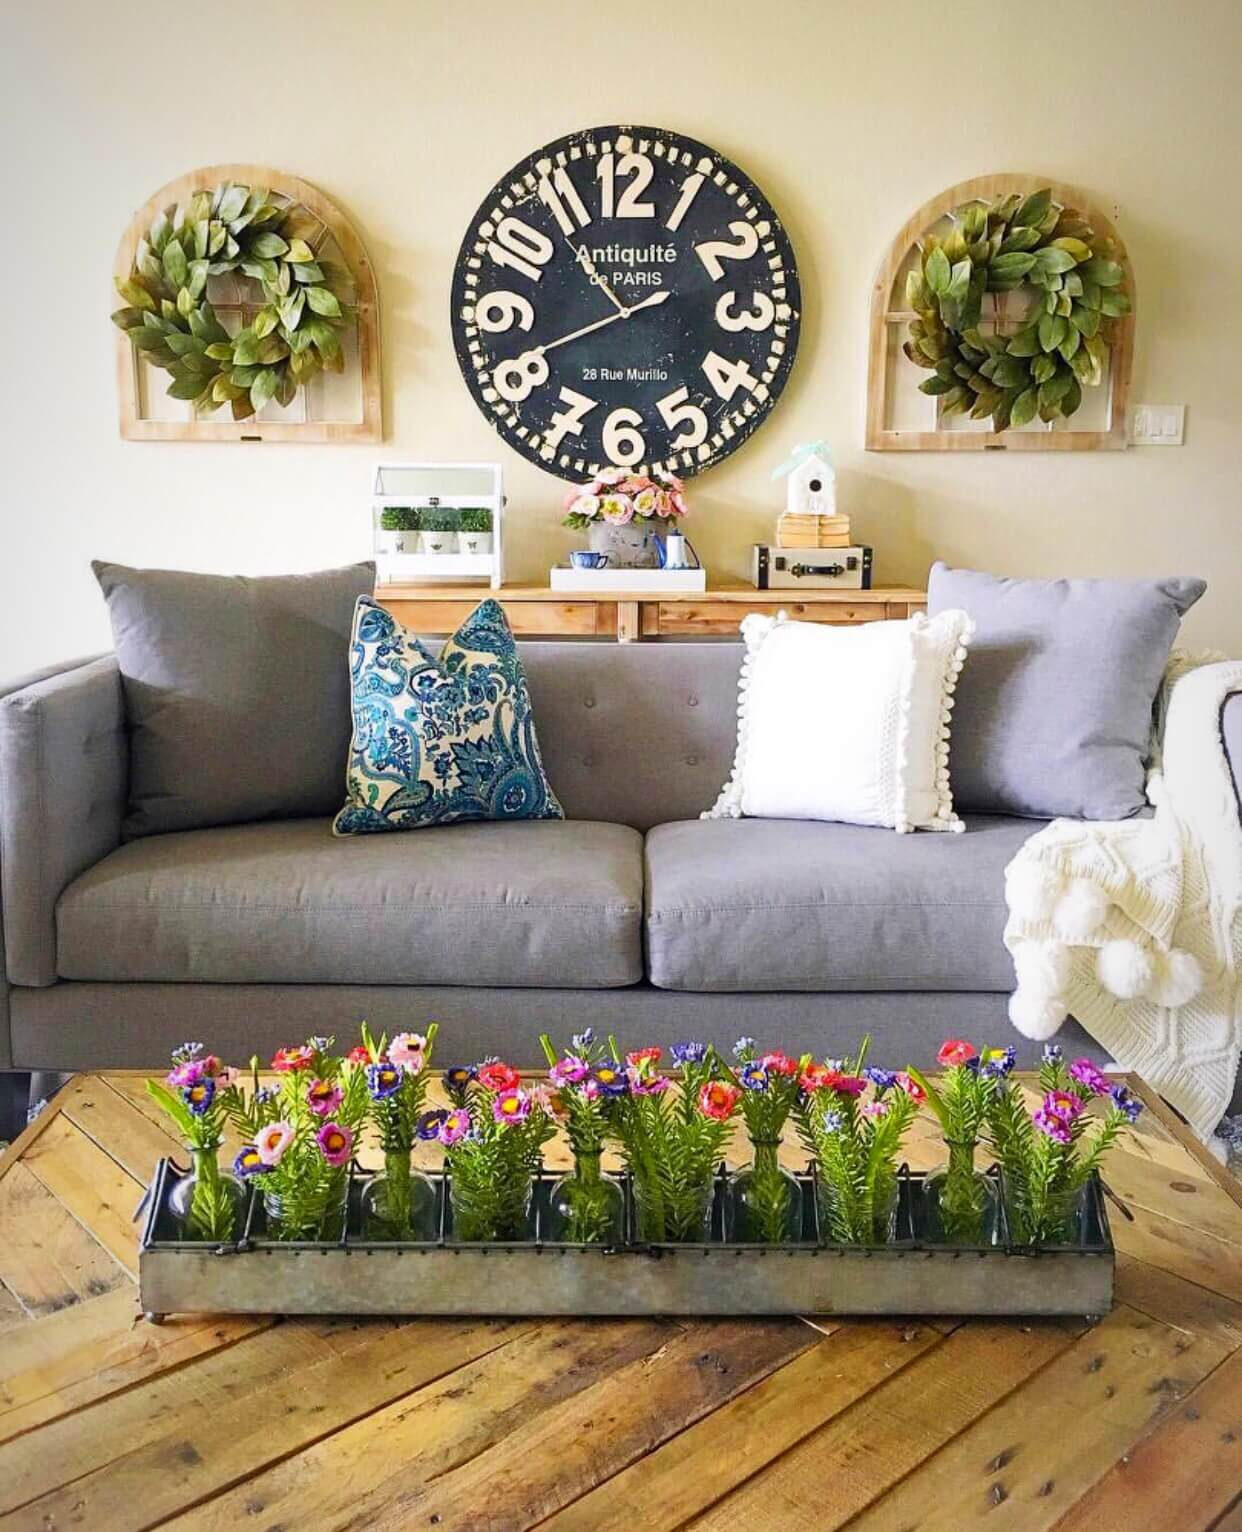 . 33 Best Rustic Living Room Wall Decor Ideas and Designs for 2019